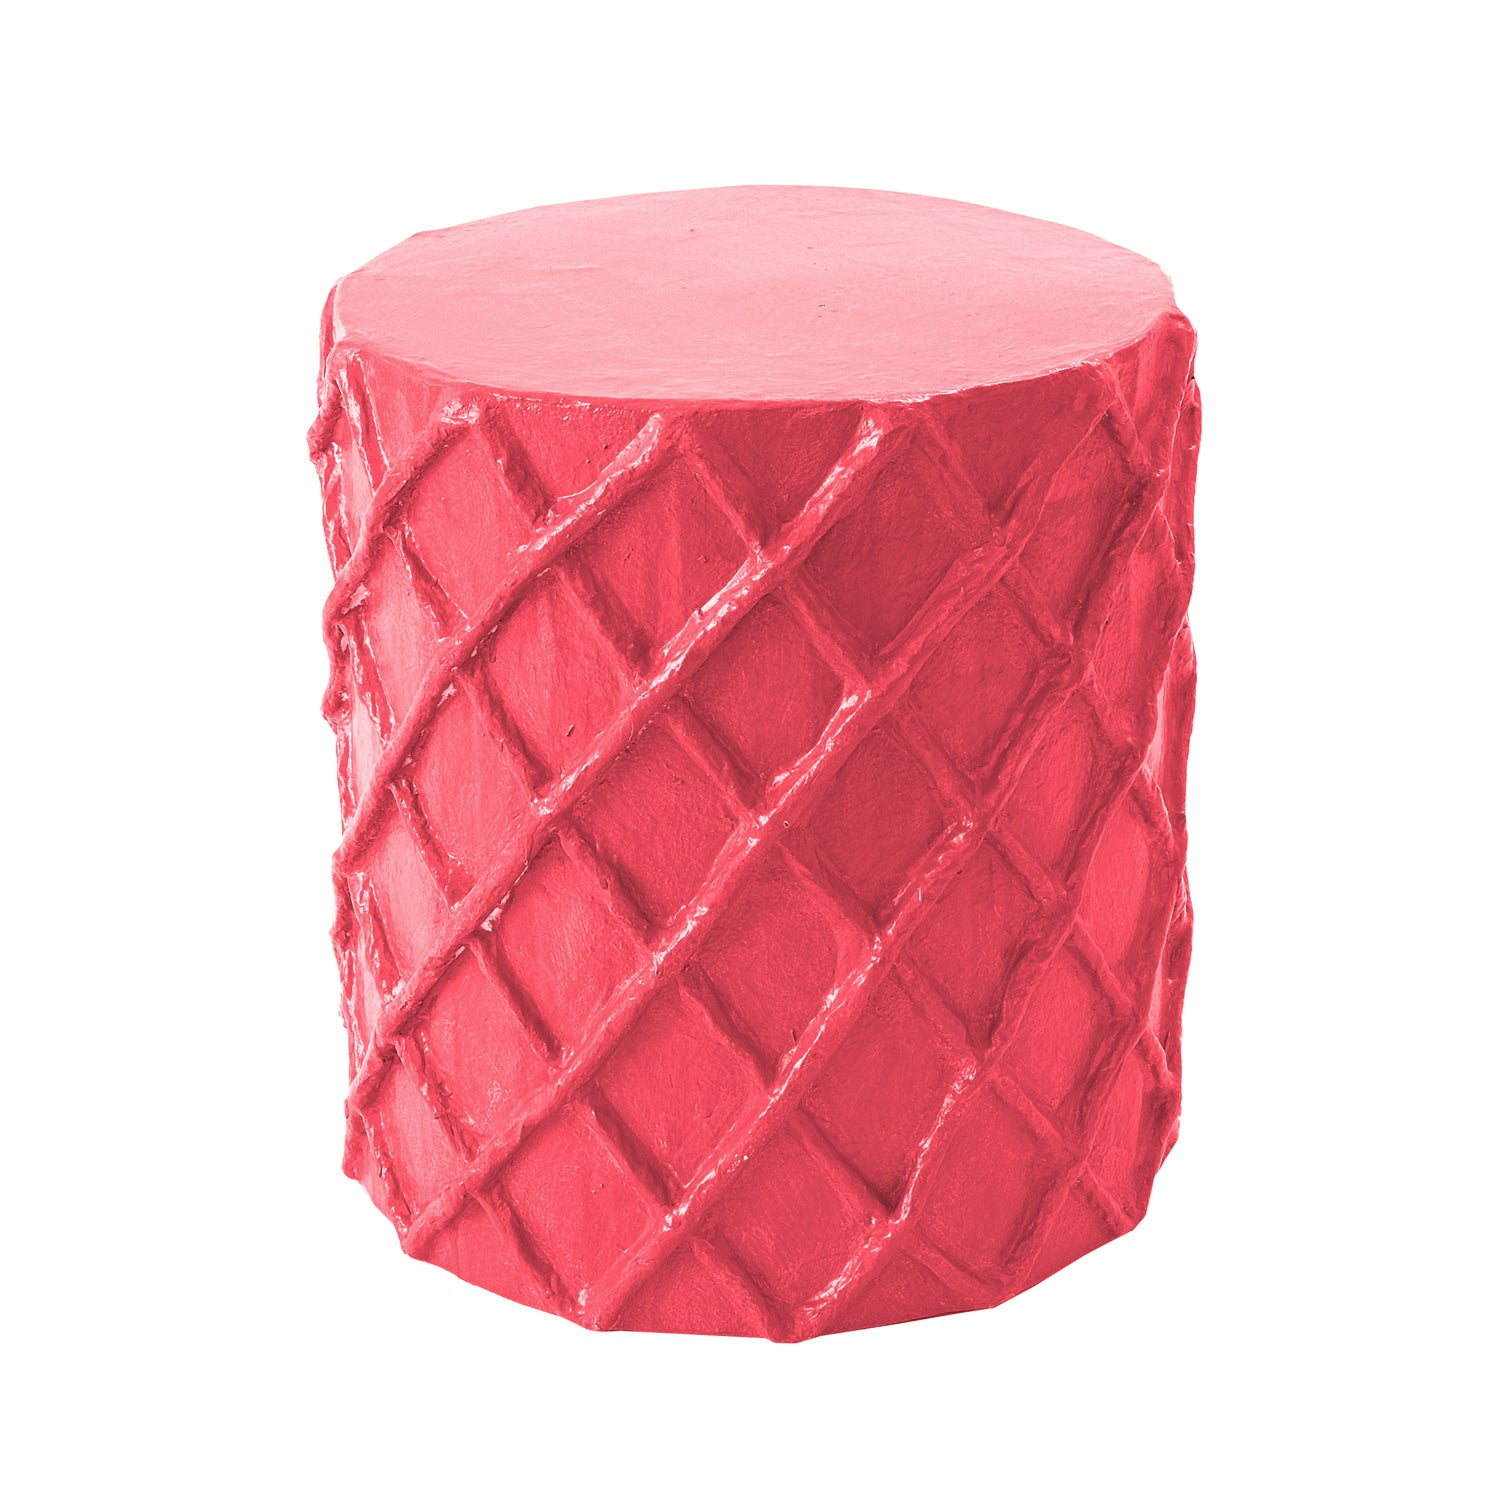 stool or accent table in hot pink